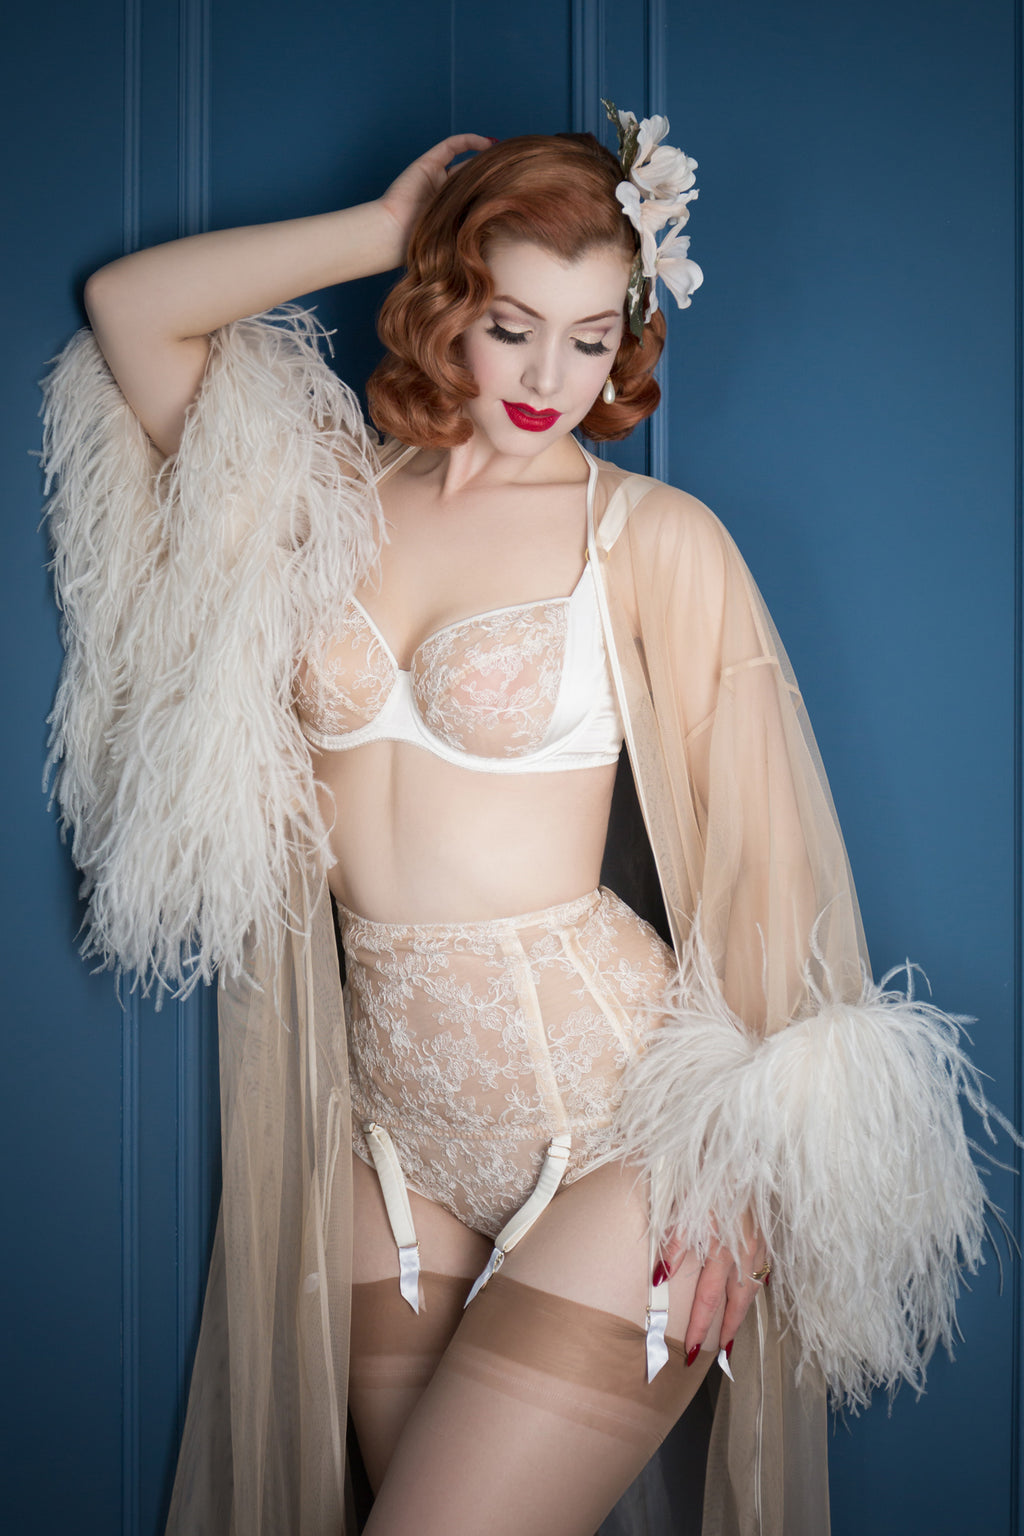 Vintage style sheer lingerie for DD - G cup bra sizes with feather robe